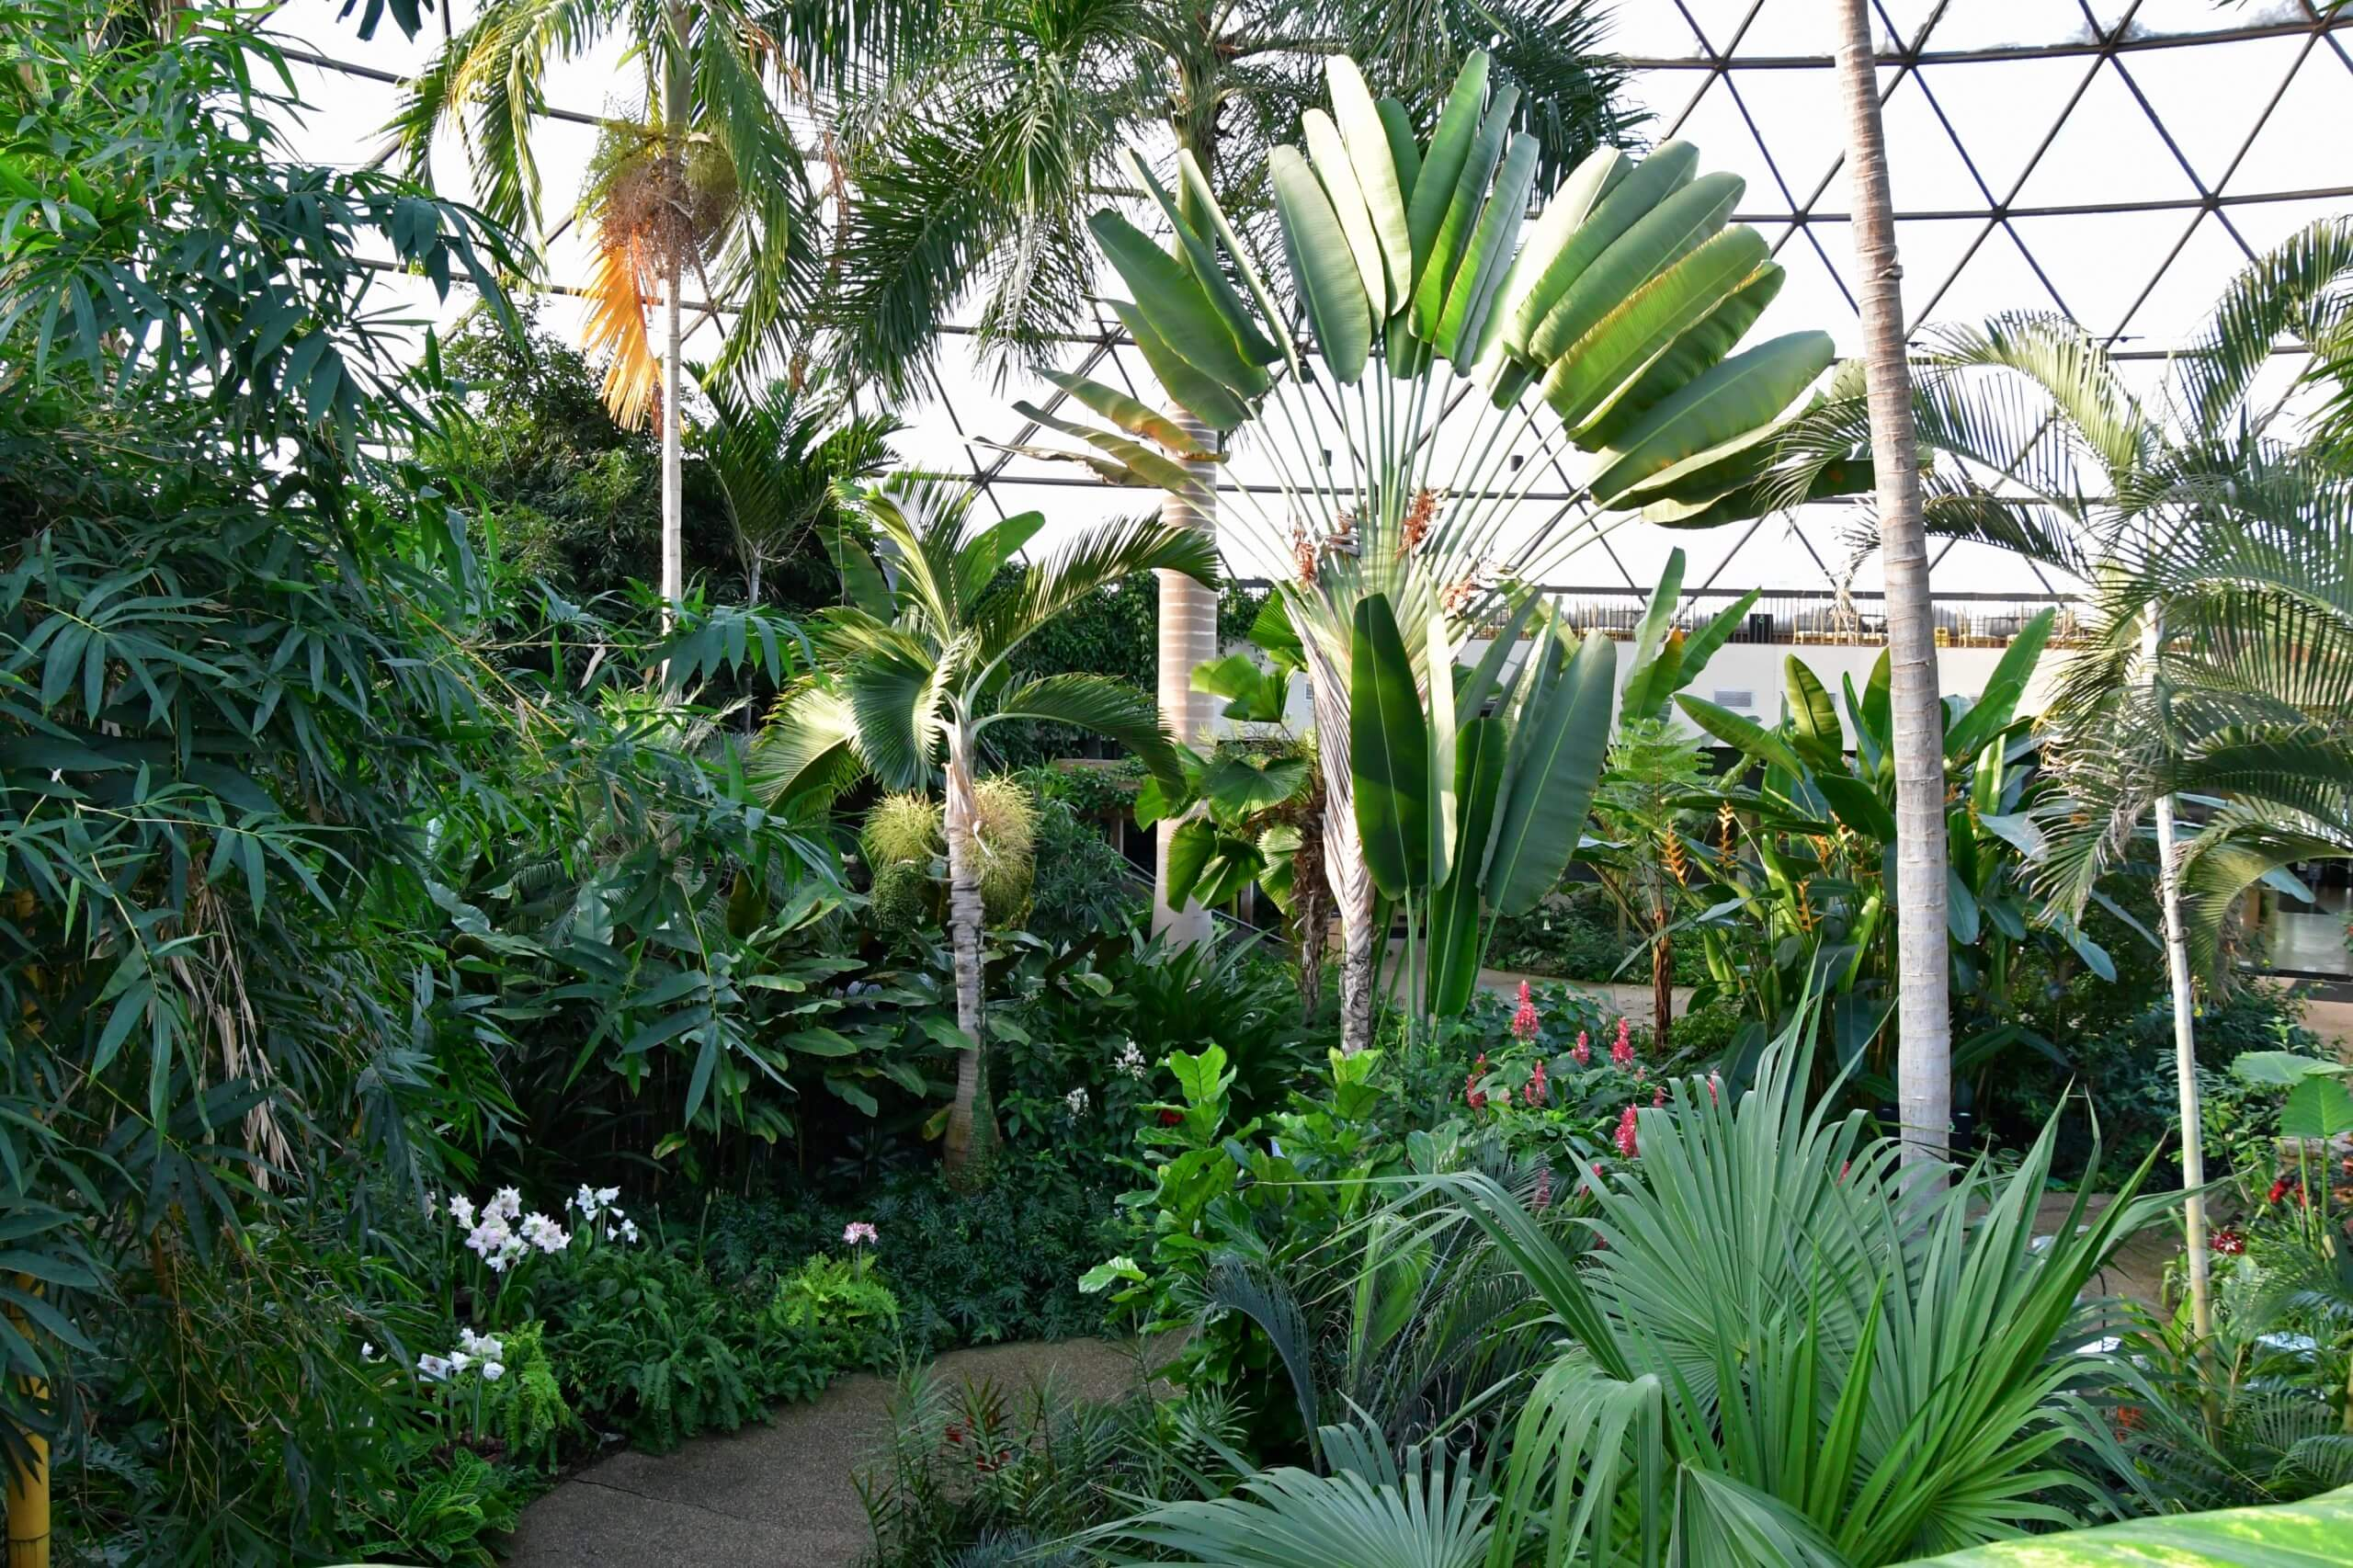 The conservatory boasts countless shades of green as snow covers the rest of Des Moines.